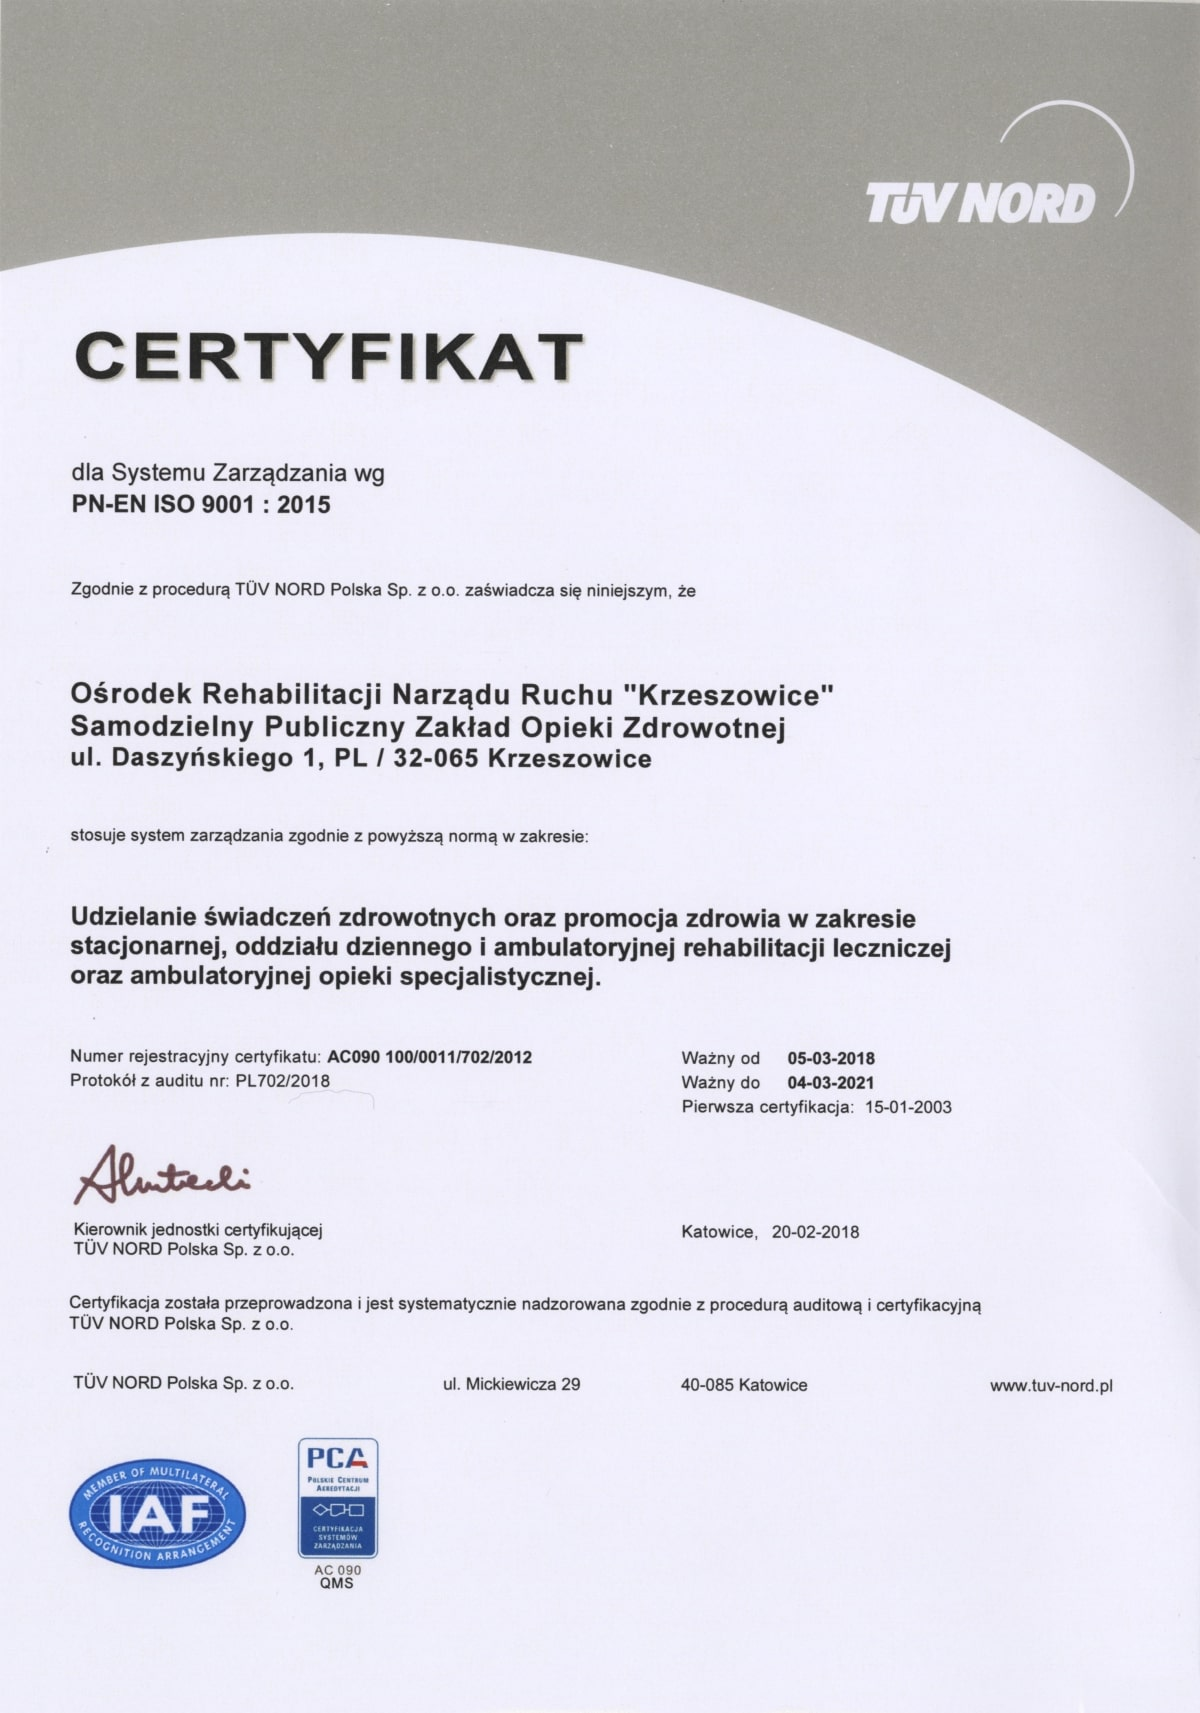 Cetryfikat ISO - PCA QMS18 001